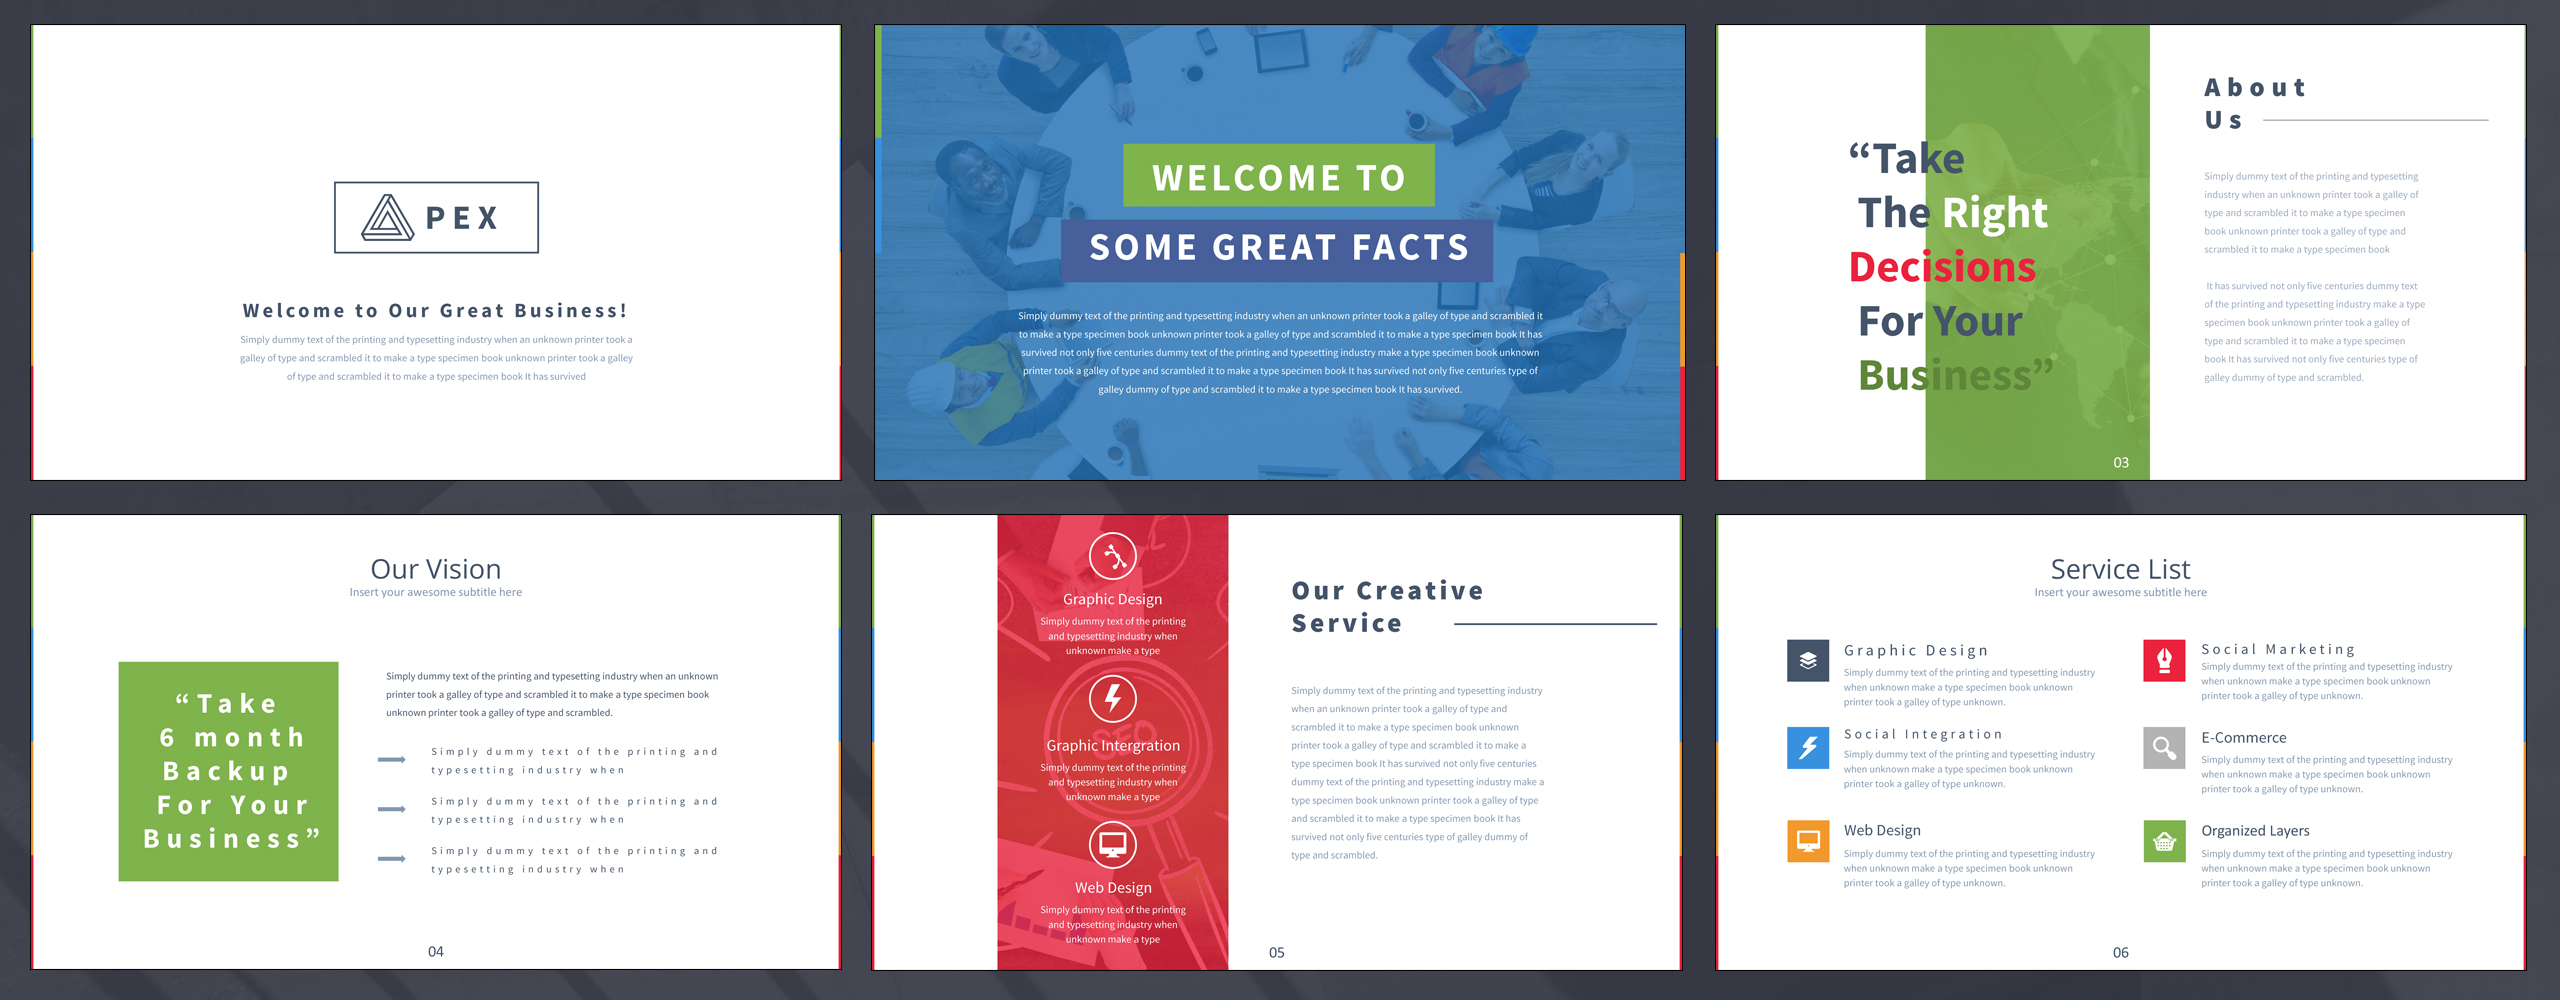 apex presentation powerpoint template #64792, Presentation templates